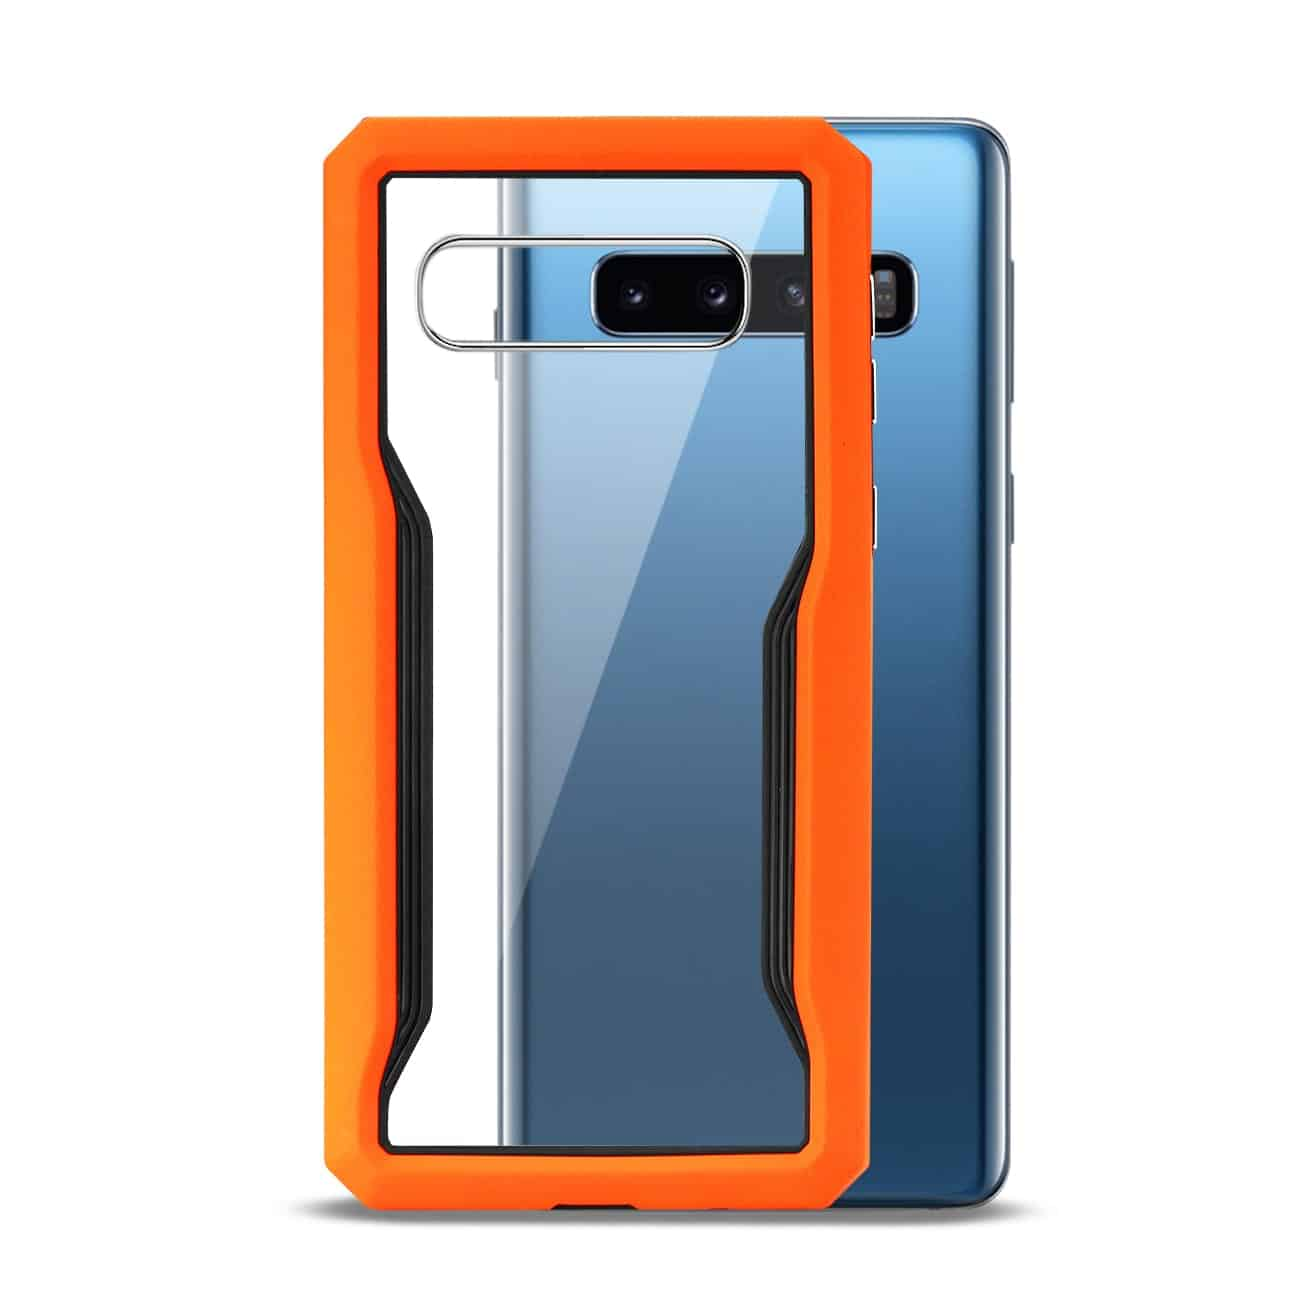 SAMSUNG GALAXY S10 Plus Protective Cover In Orange